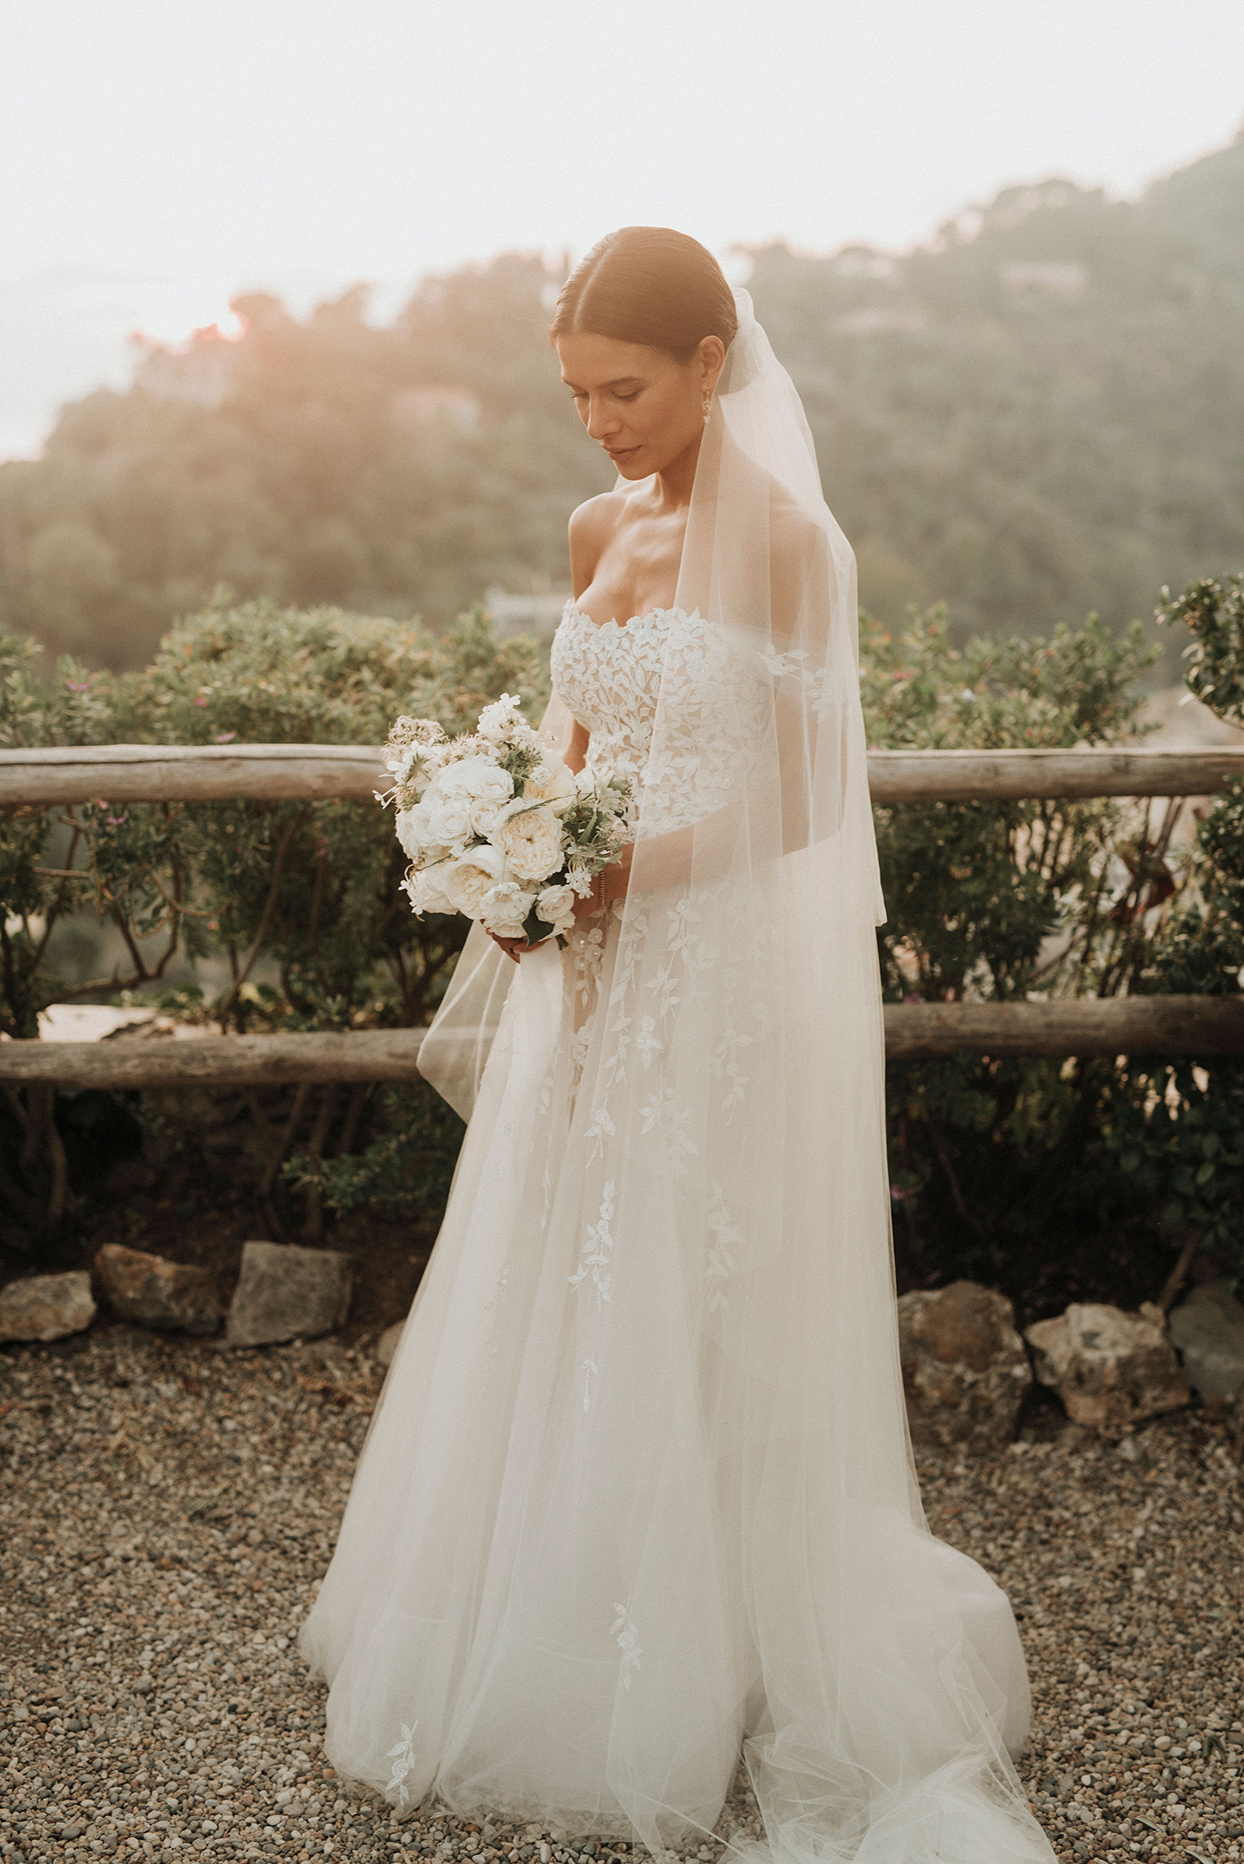 jaclyn antonio wedding bride in elegant lace and tool dress